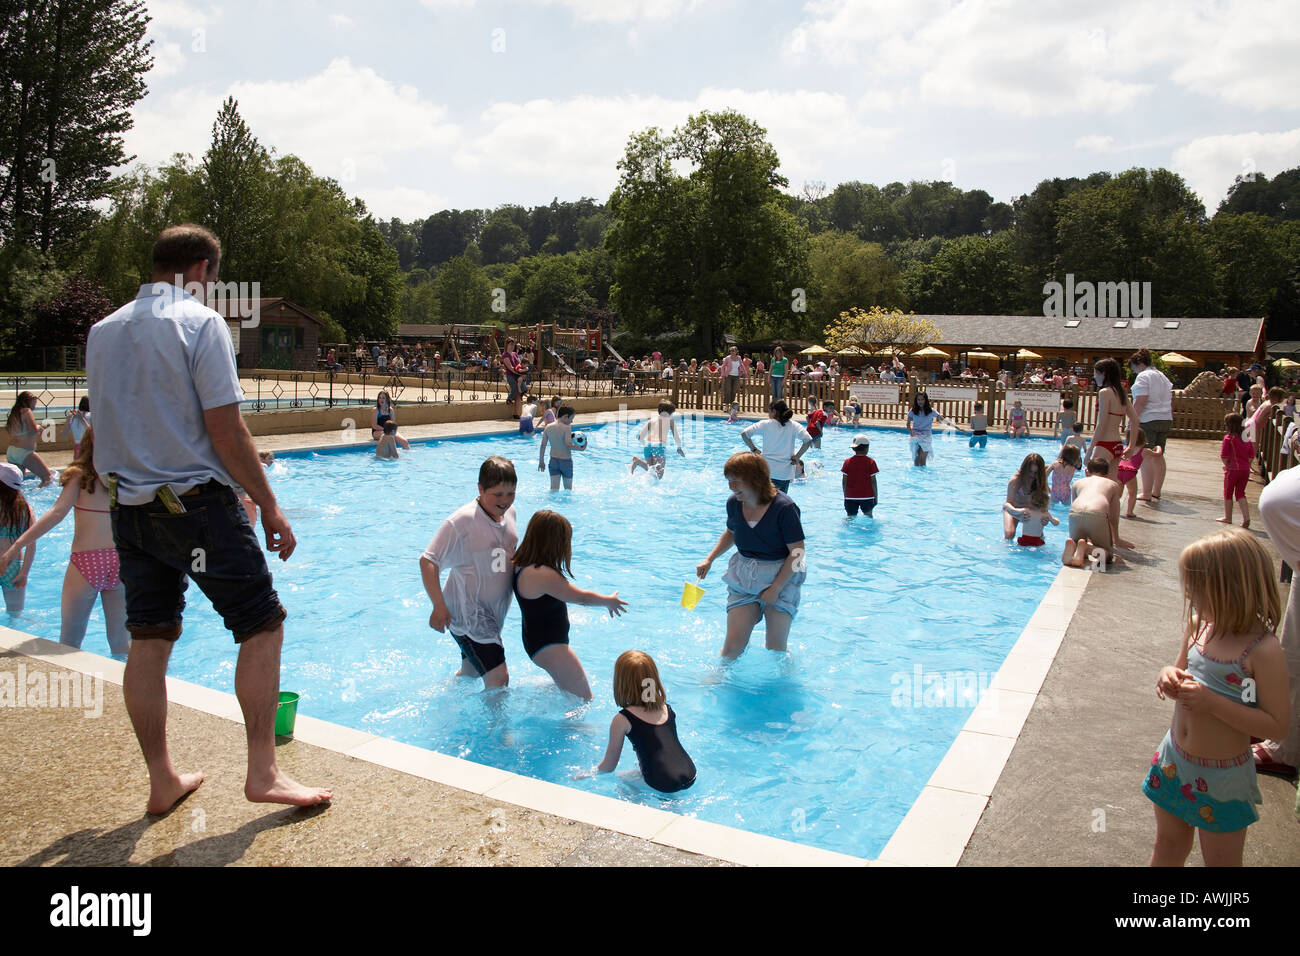 beale park childrens swimming pool and play park near goring on river stock photo 9483252 alamy. Black Bedroom Furniture Sets. Home Design Ideas